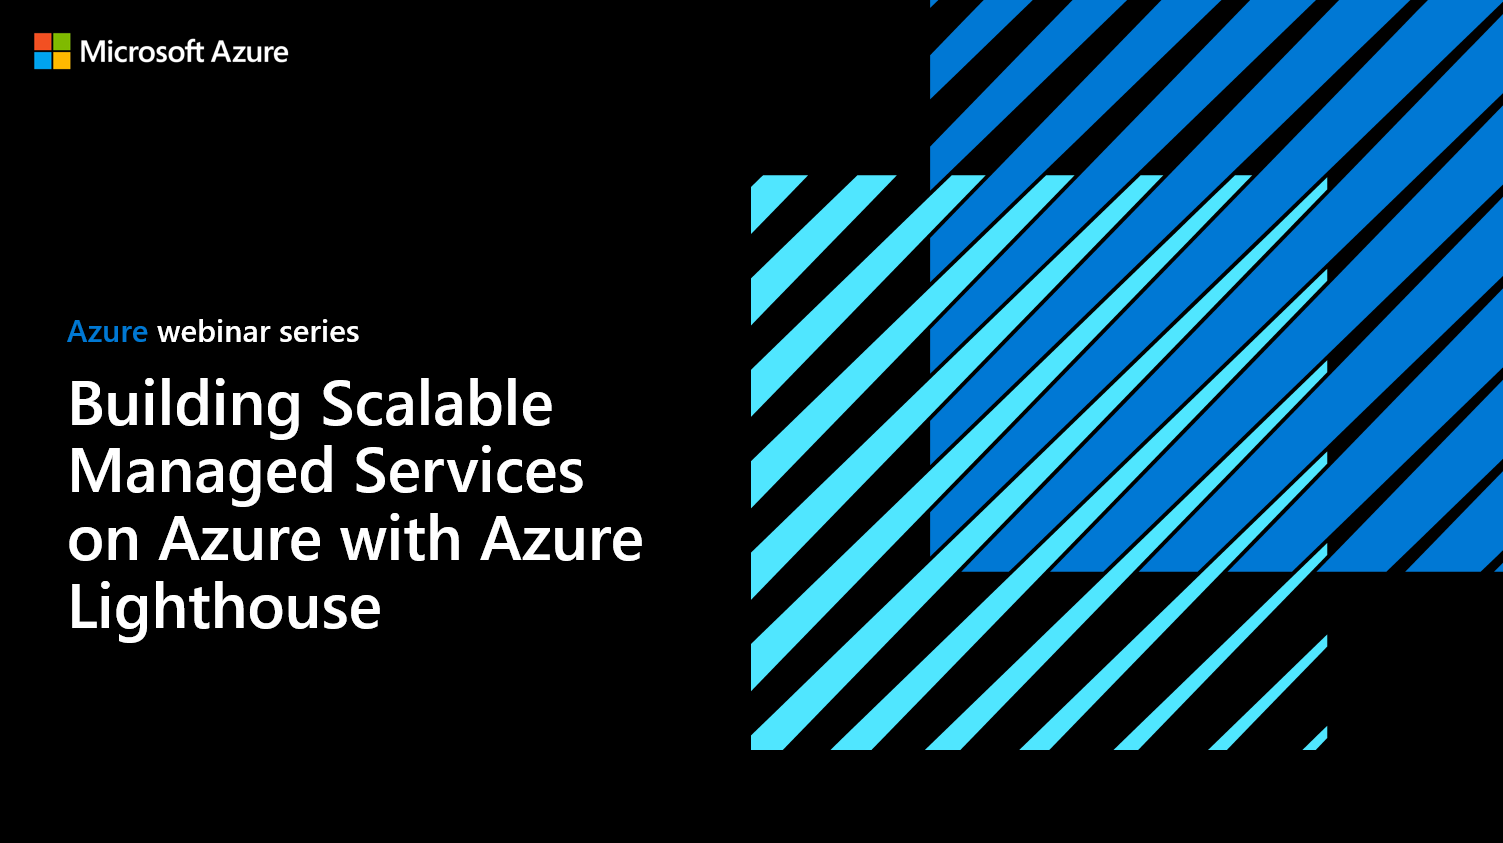 Building Scalable Managed Services on Azure with Azure Lighthouse